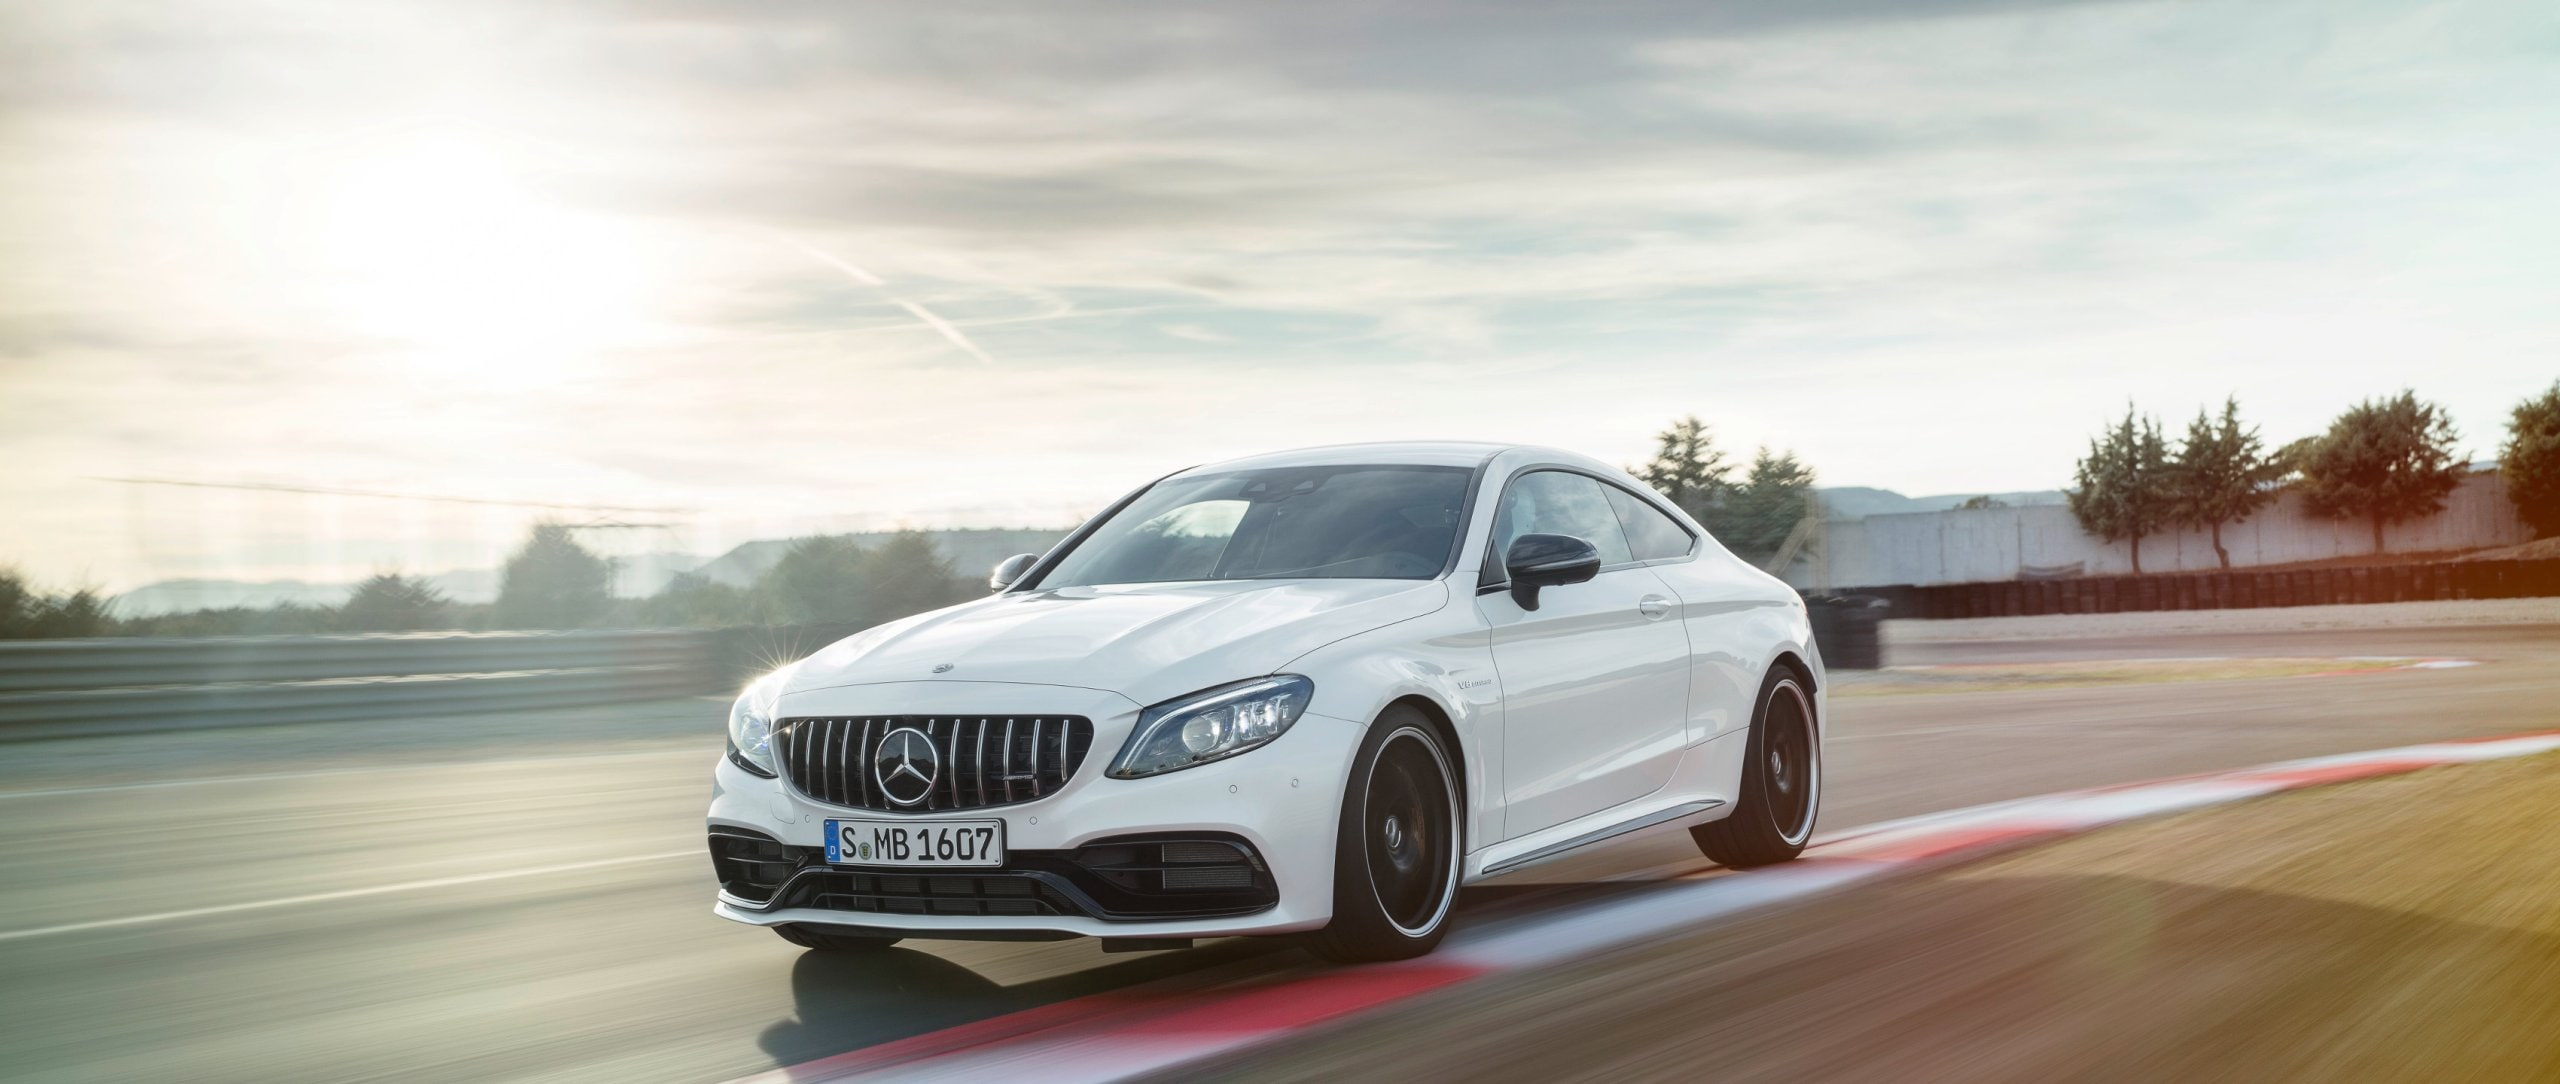 The Mercedes-AMG C 63 S Coupé (2018) perfectly embodies the core of the performance and sports car brand.